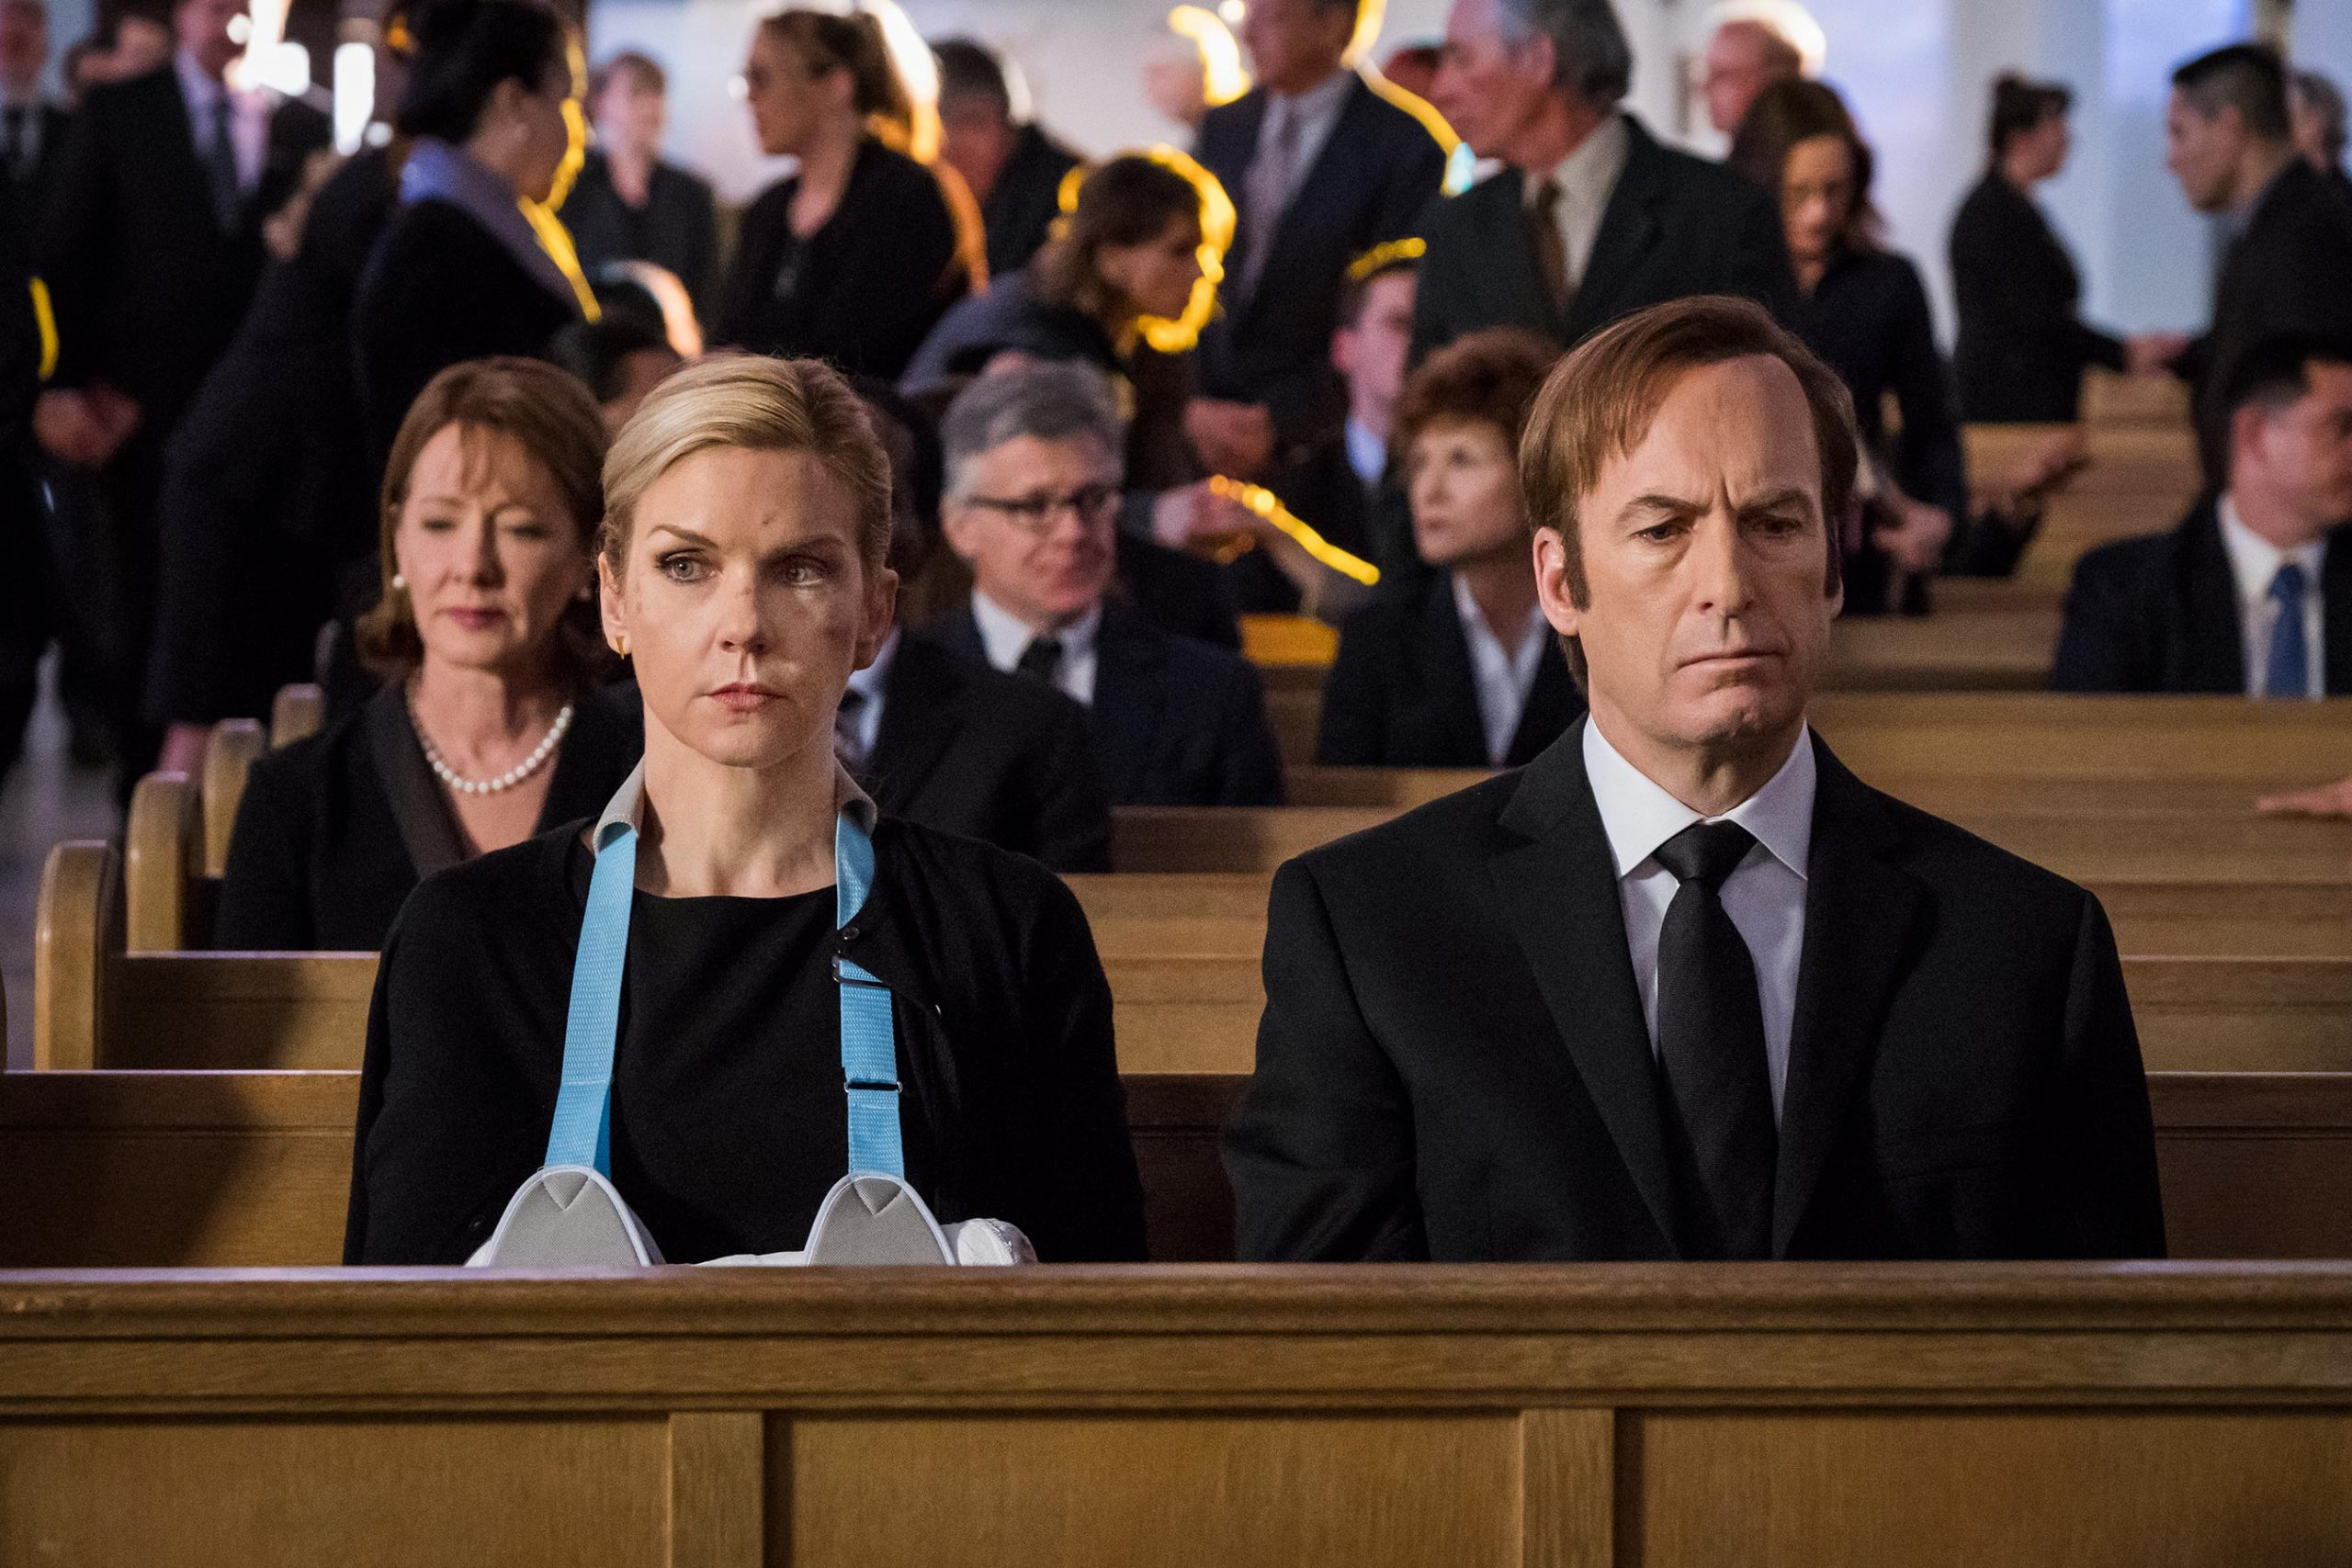 'Better Call Saul' Season 5 Premiere: 5 Key Moments From 'Magic Man'